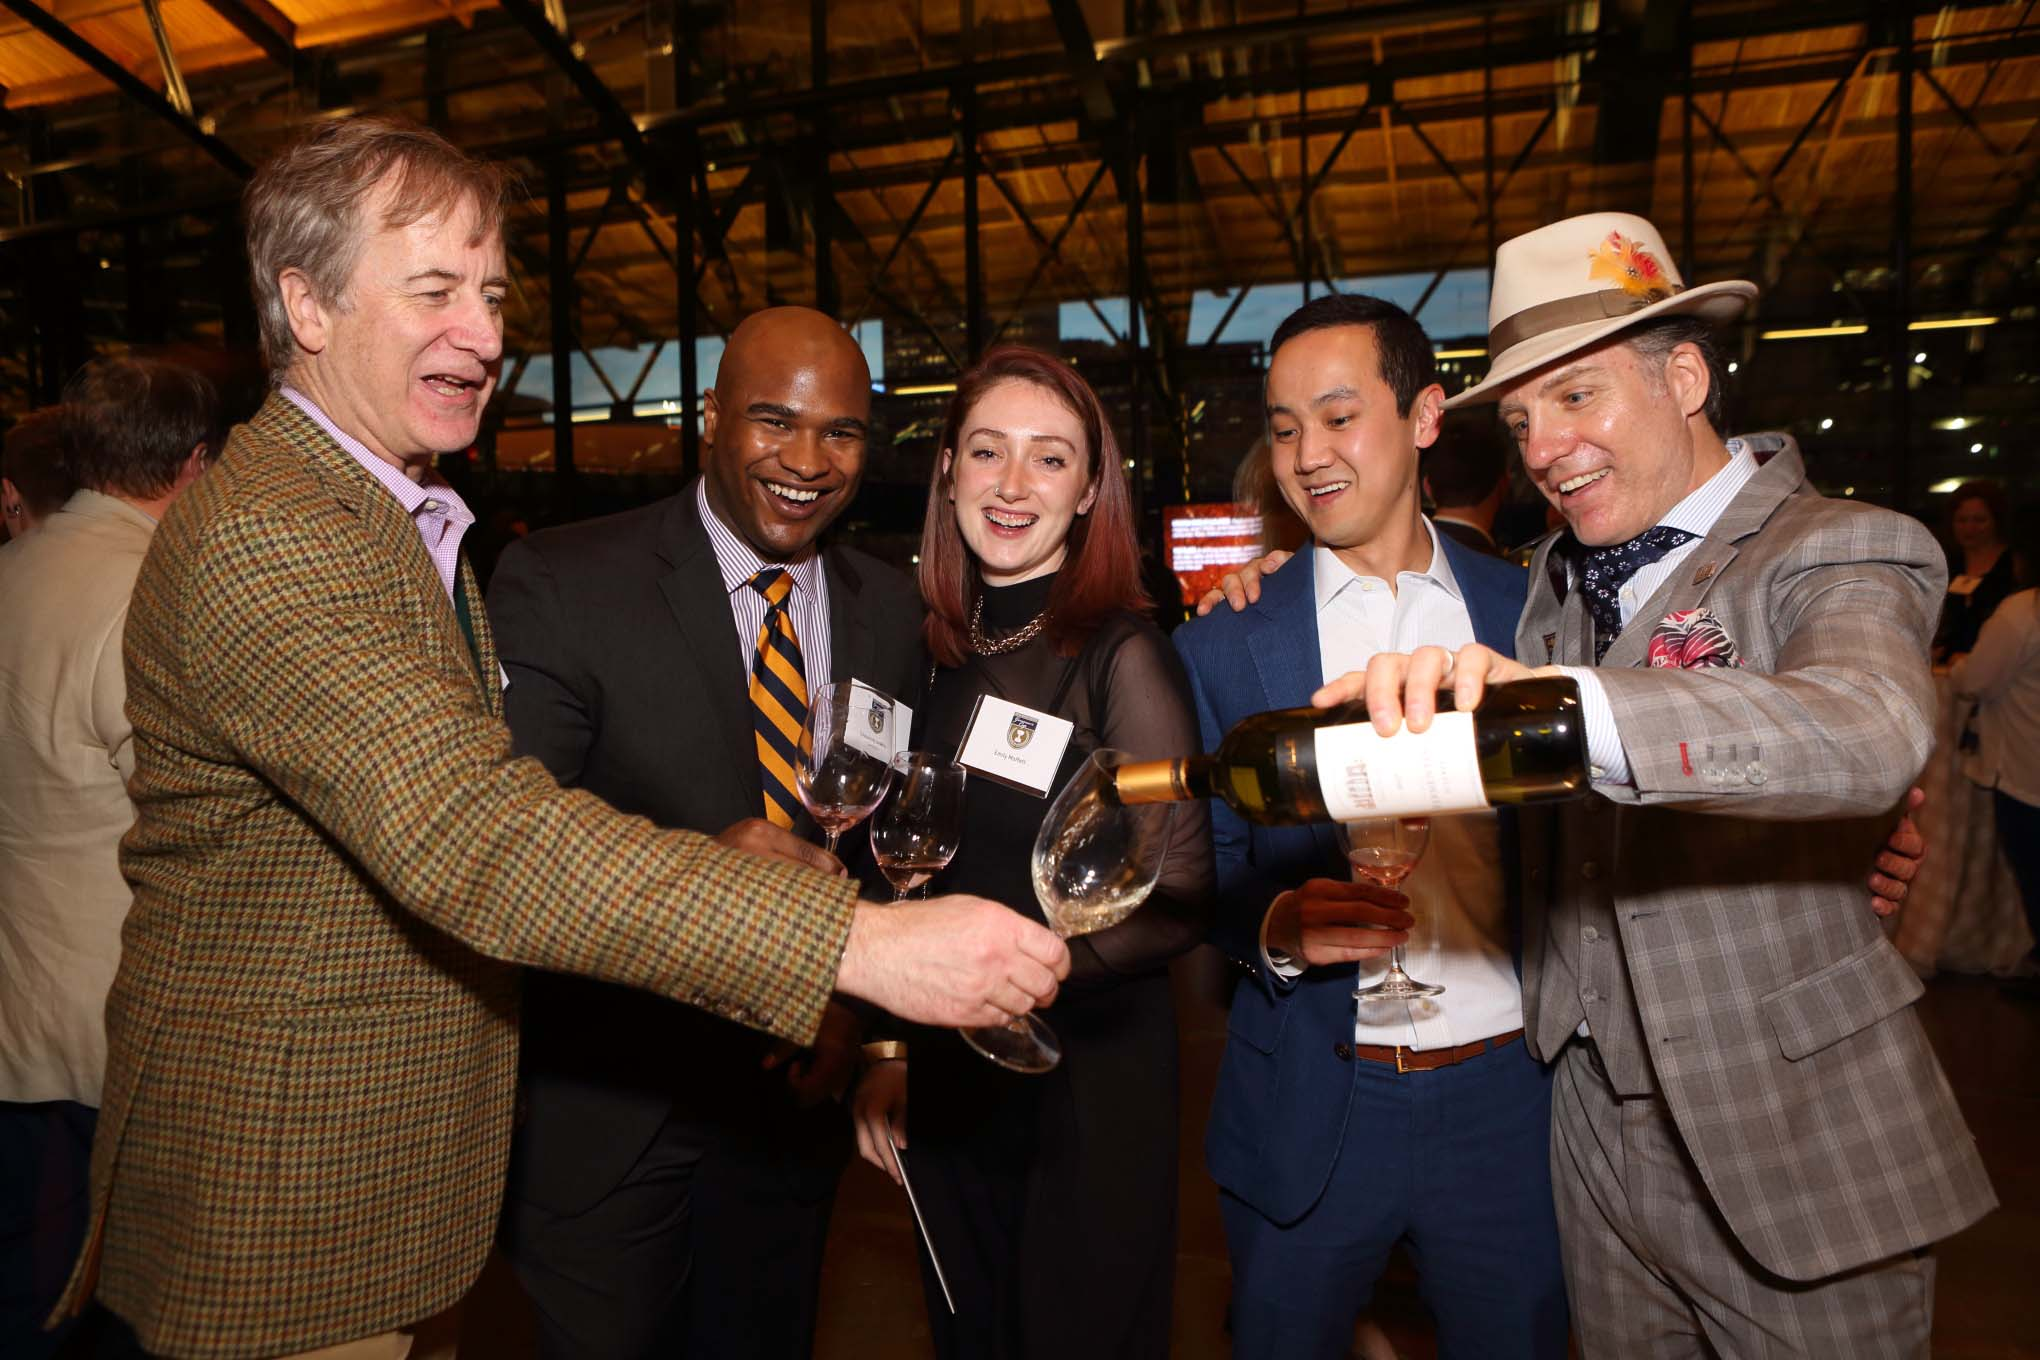 Virginia wine poured at Richmond's Governor's Cup